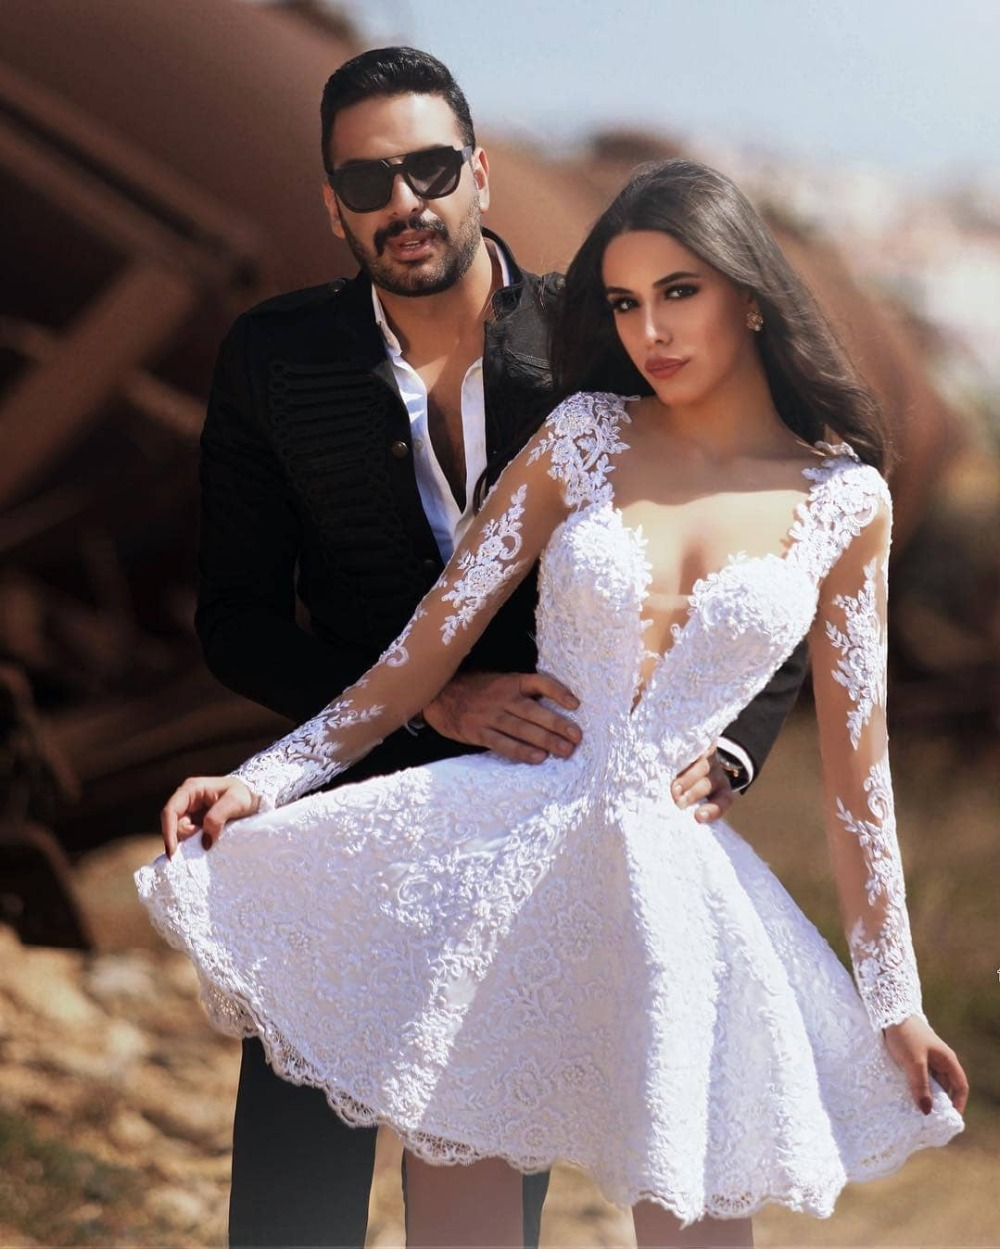 Fashion Long Sleeve Lace White Short Wedding Dress Crew-Neck Bride Dress Vestido Corto De Novia Plus Size Bridal Gowns